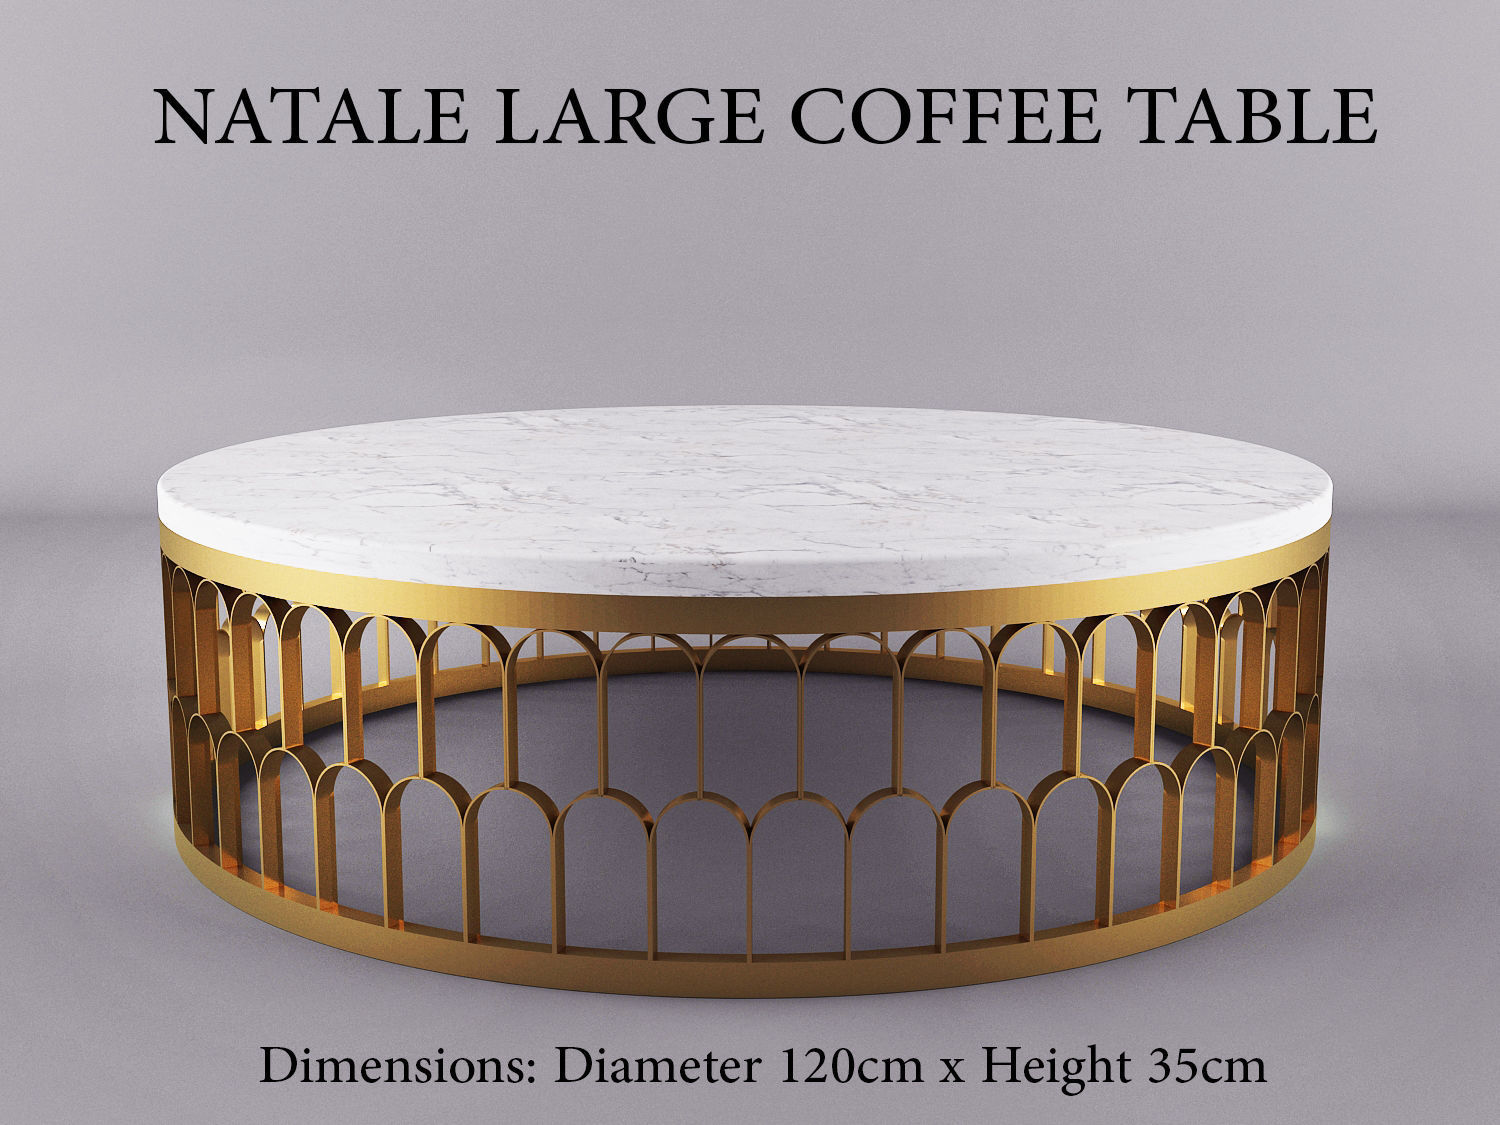 Natale Large Gold Andwhite Marble Coffee Table Model